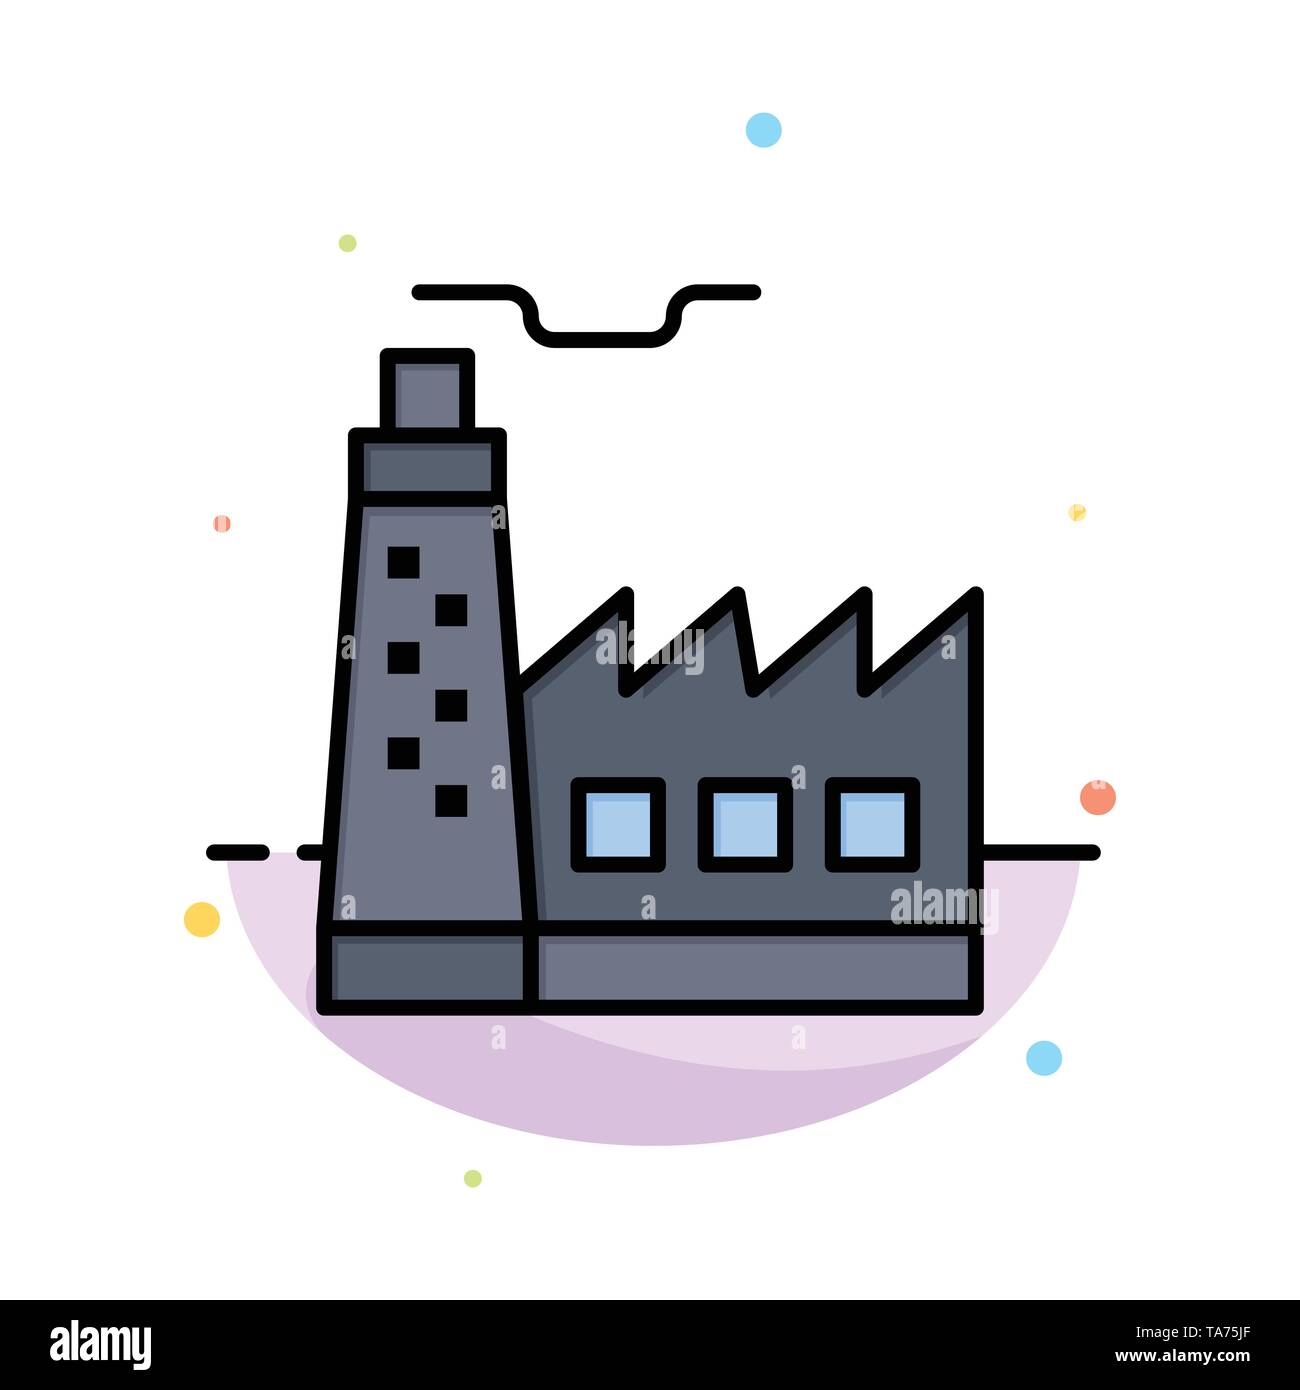 Building, Factory, Construction, Industry Abstract Flat Color Icon Template - Stock Image